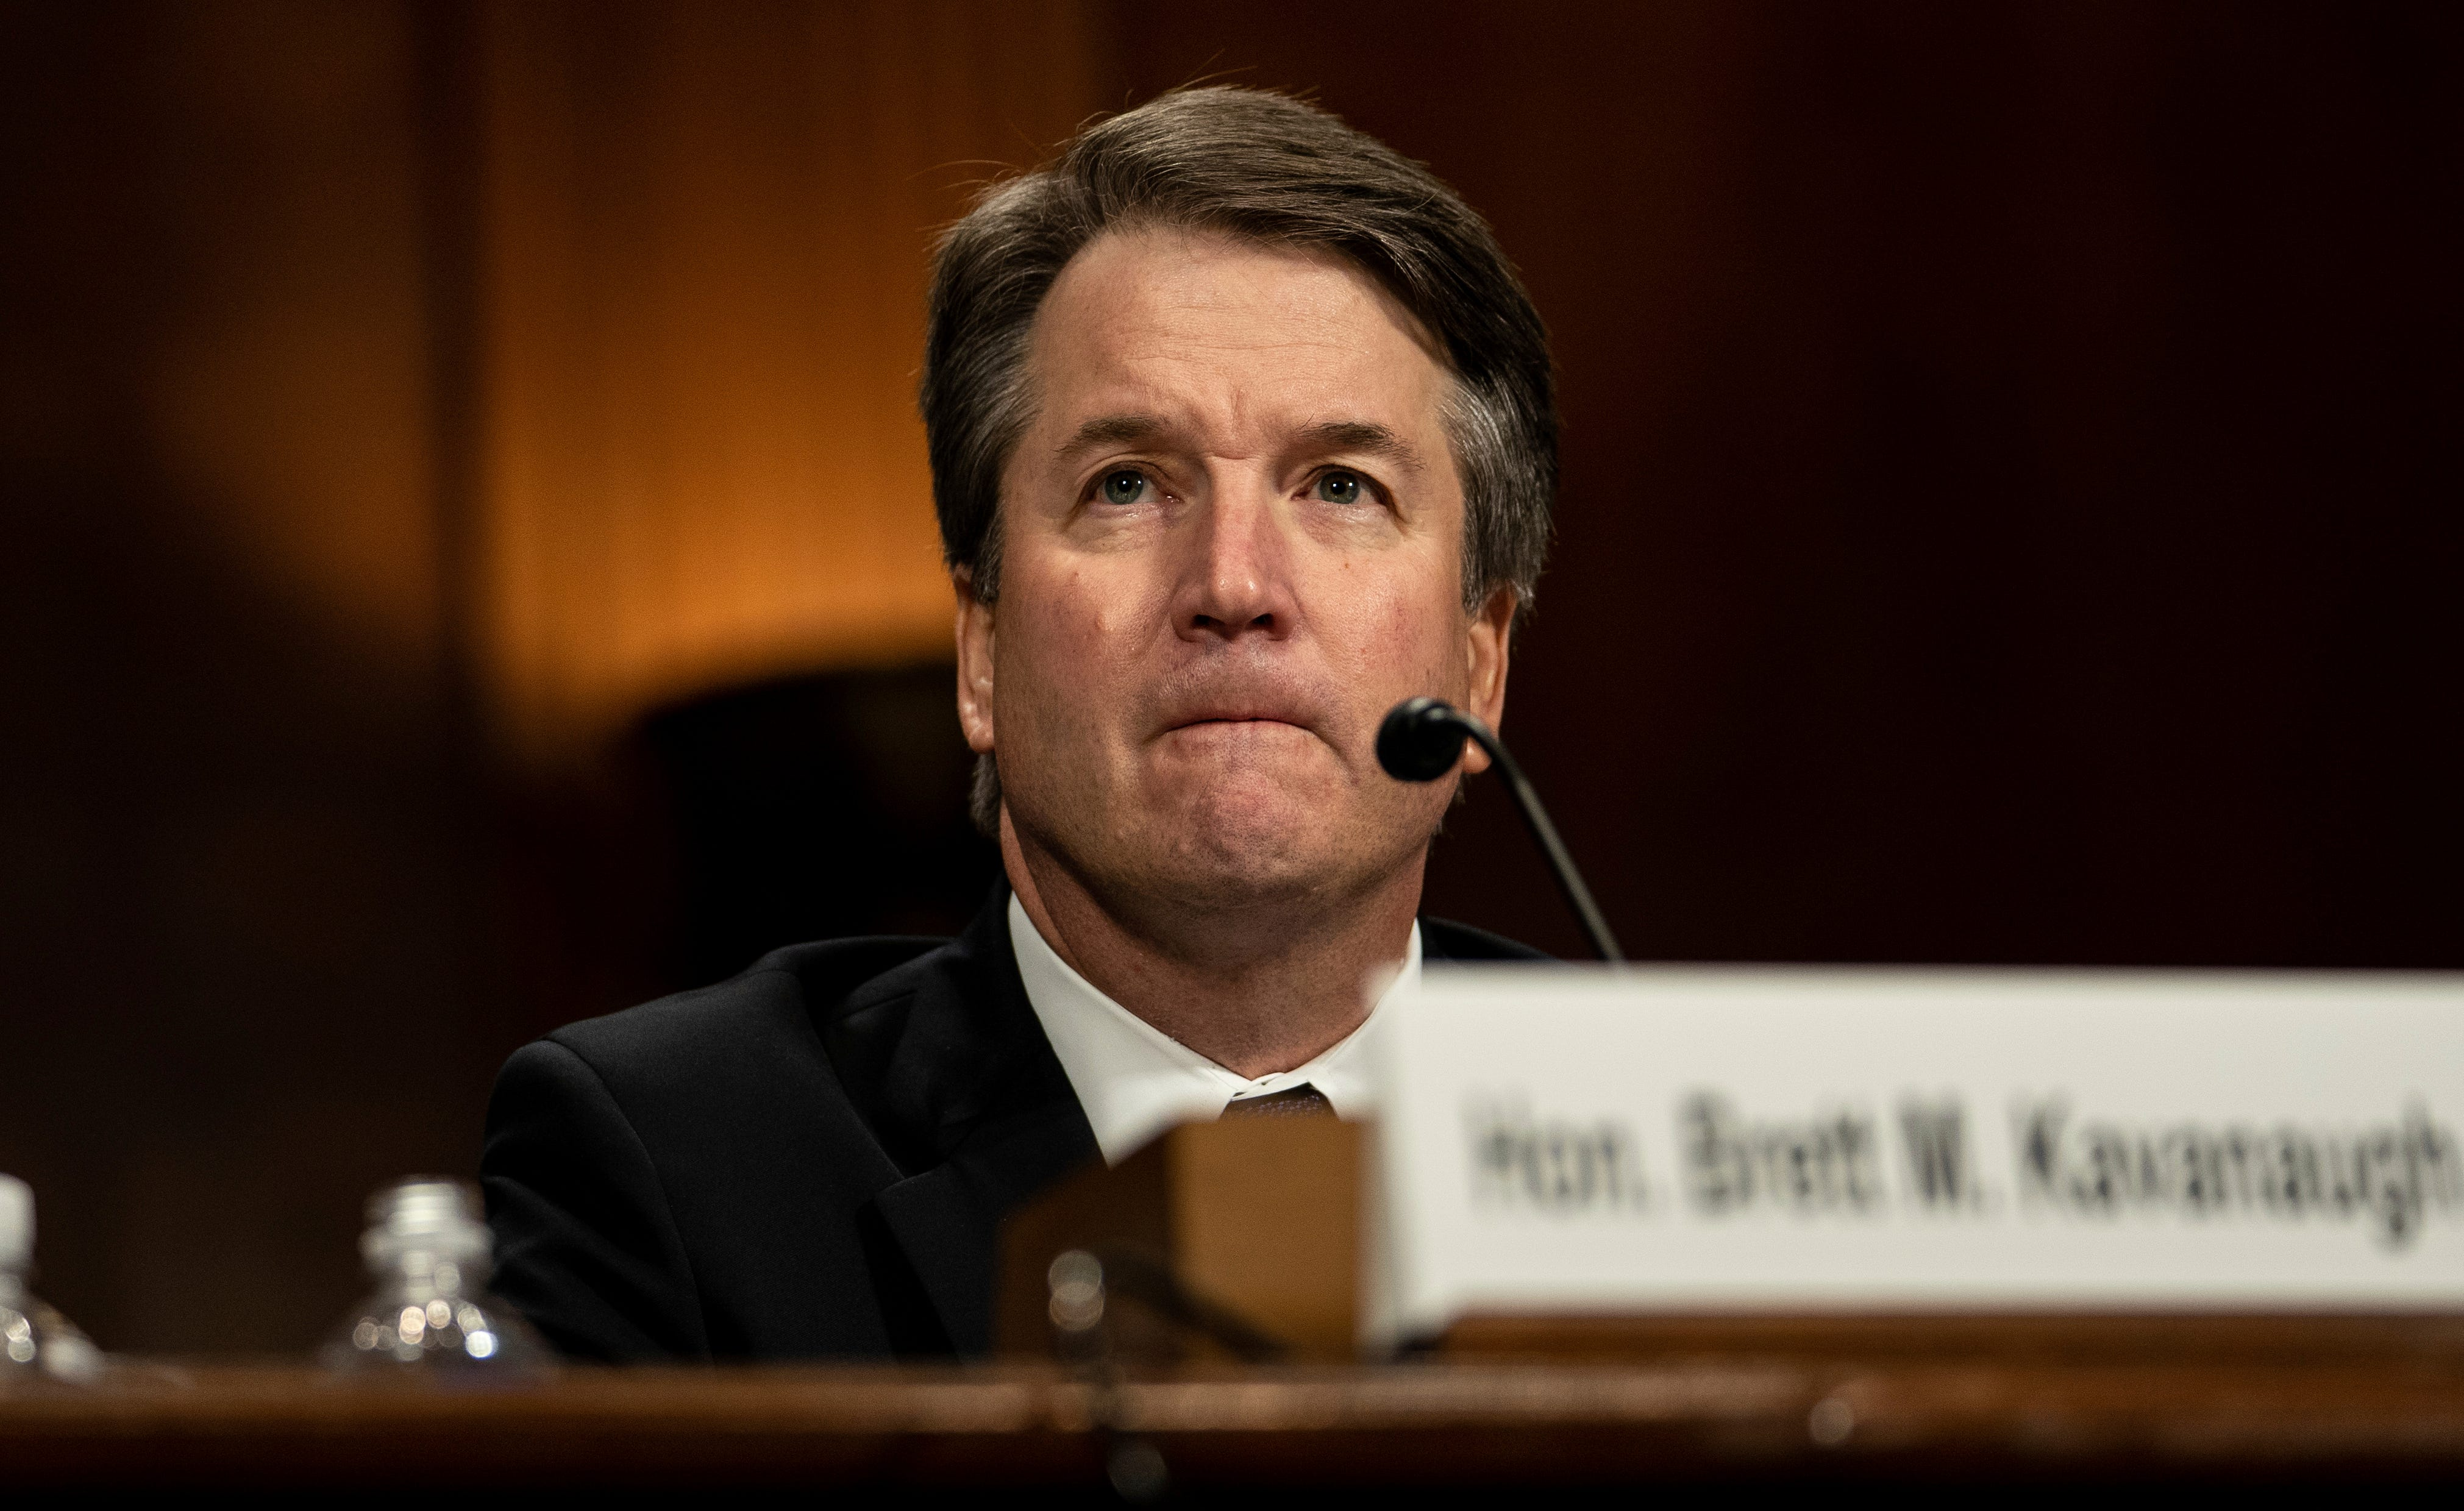 Supreme Court nominee Brett Kavanaugh testifies before the Senate Judiciary Committee on Capitol Hill on Sept. 27, 2108.